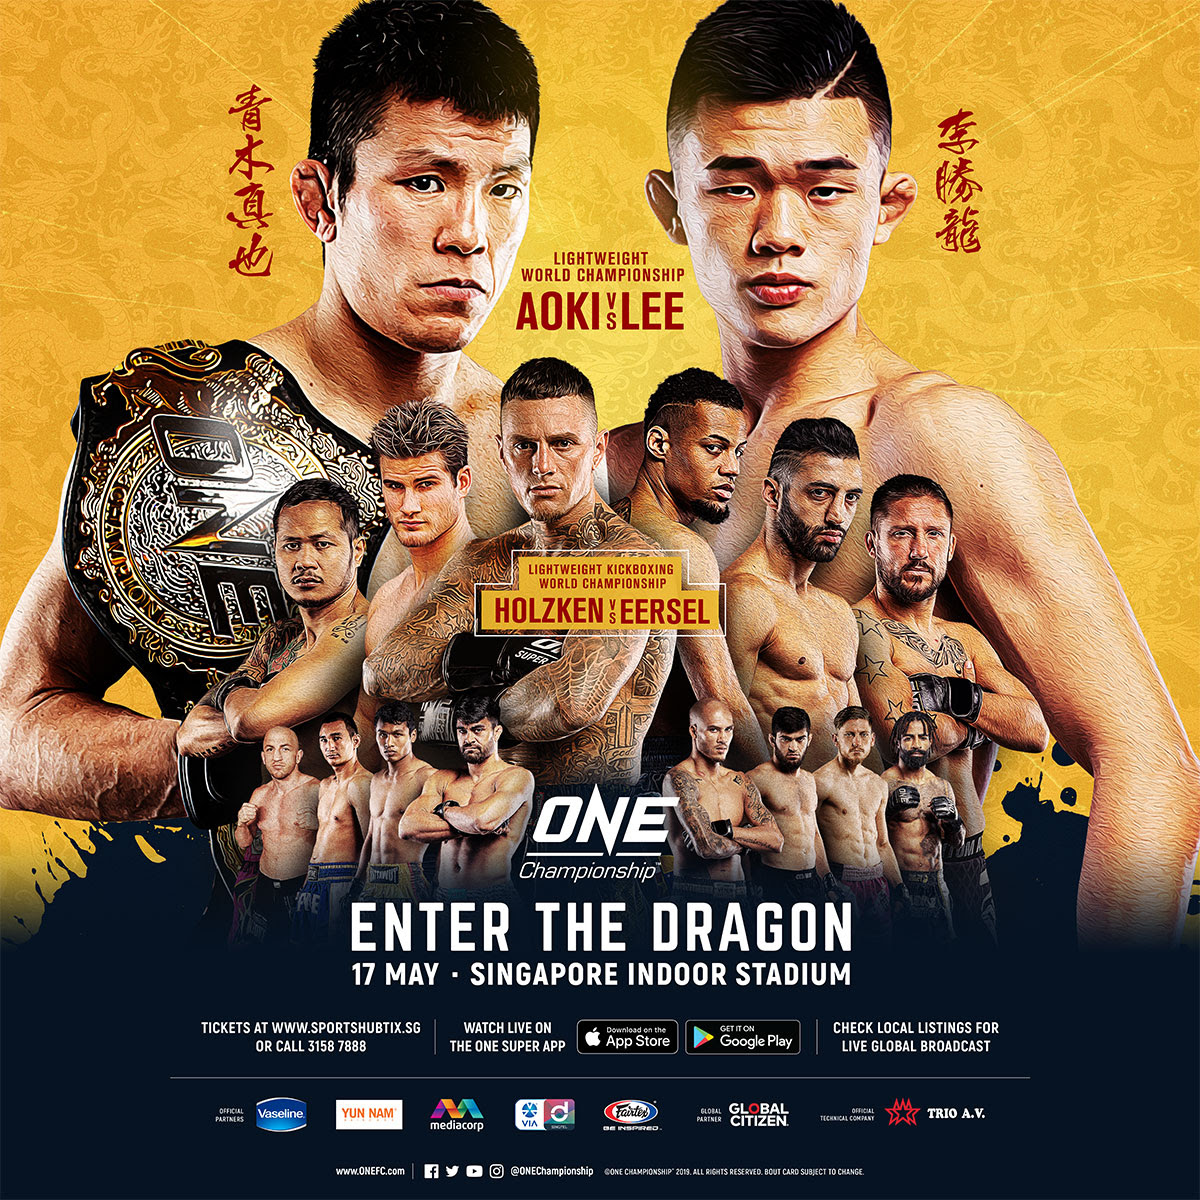 ADDITIONAL BOUTS ANNOUNCED FOR ONE: ENTER THE DRAGON IN SINGAPORE ON 17 MAY -